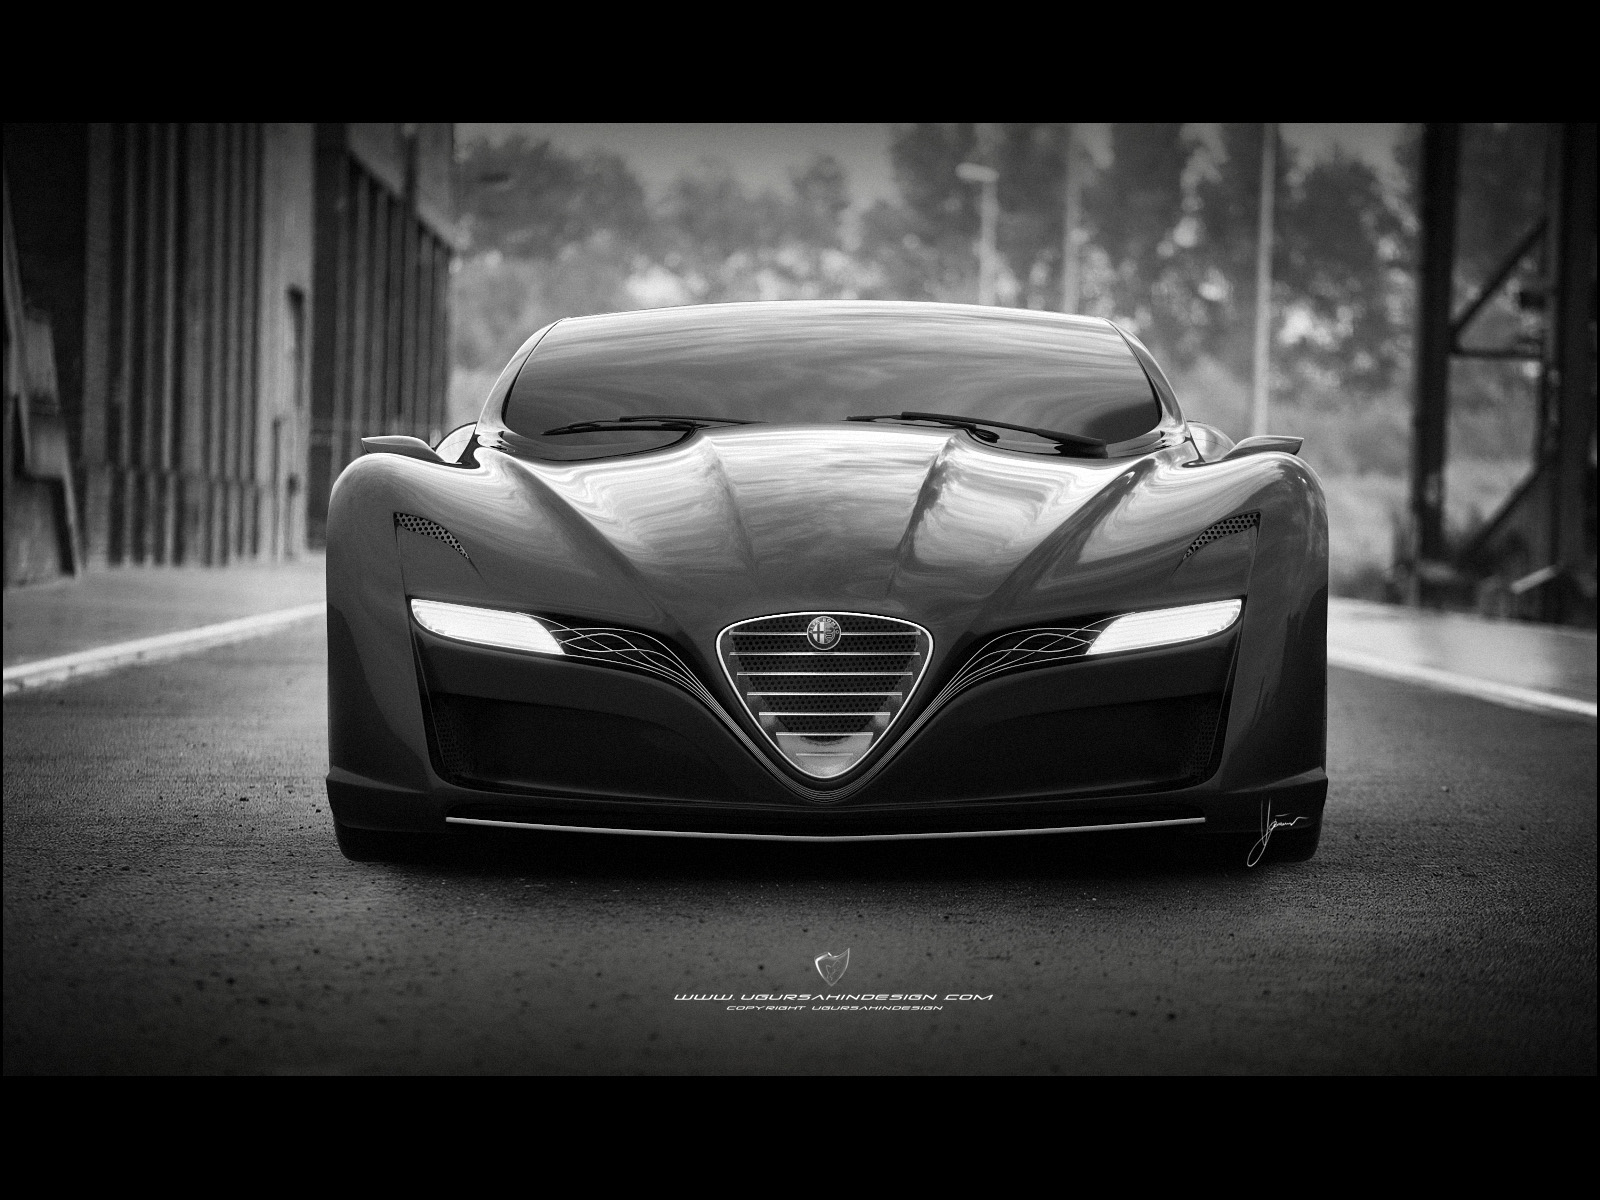 1600x1200 - Alfa Romeo 12C GTS Wallpapers 2